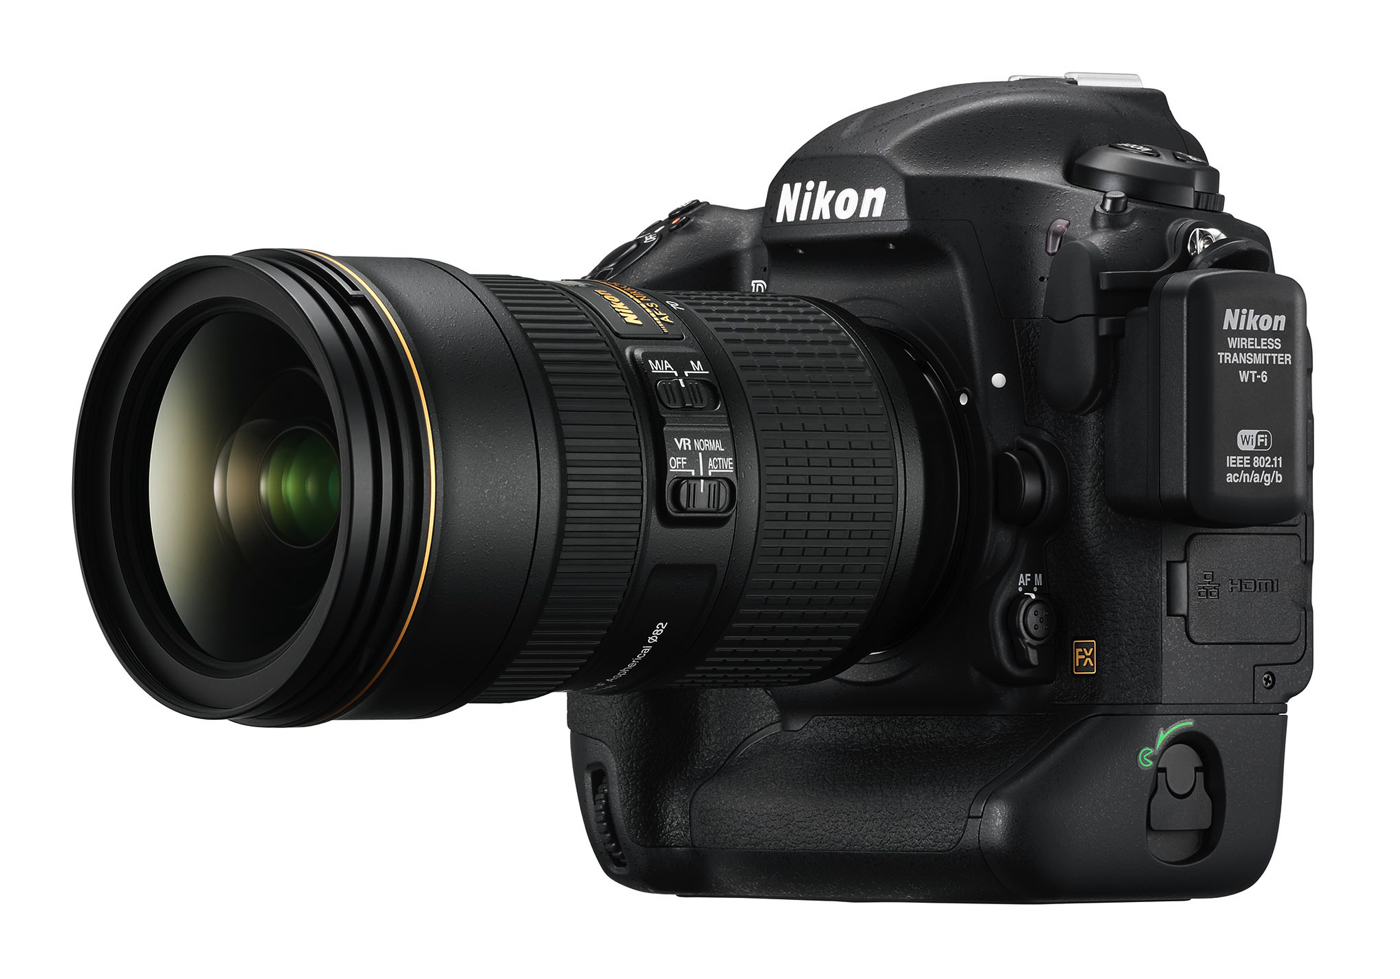 Nikon D5s Rumored to be Announced at CES 2018